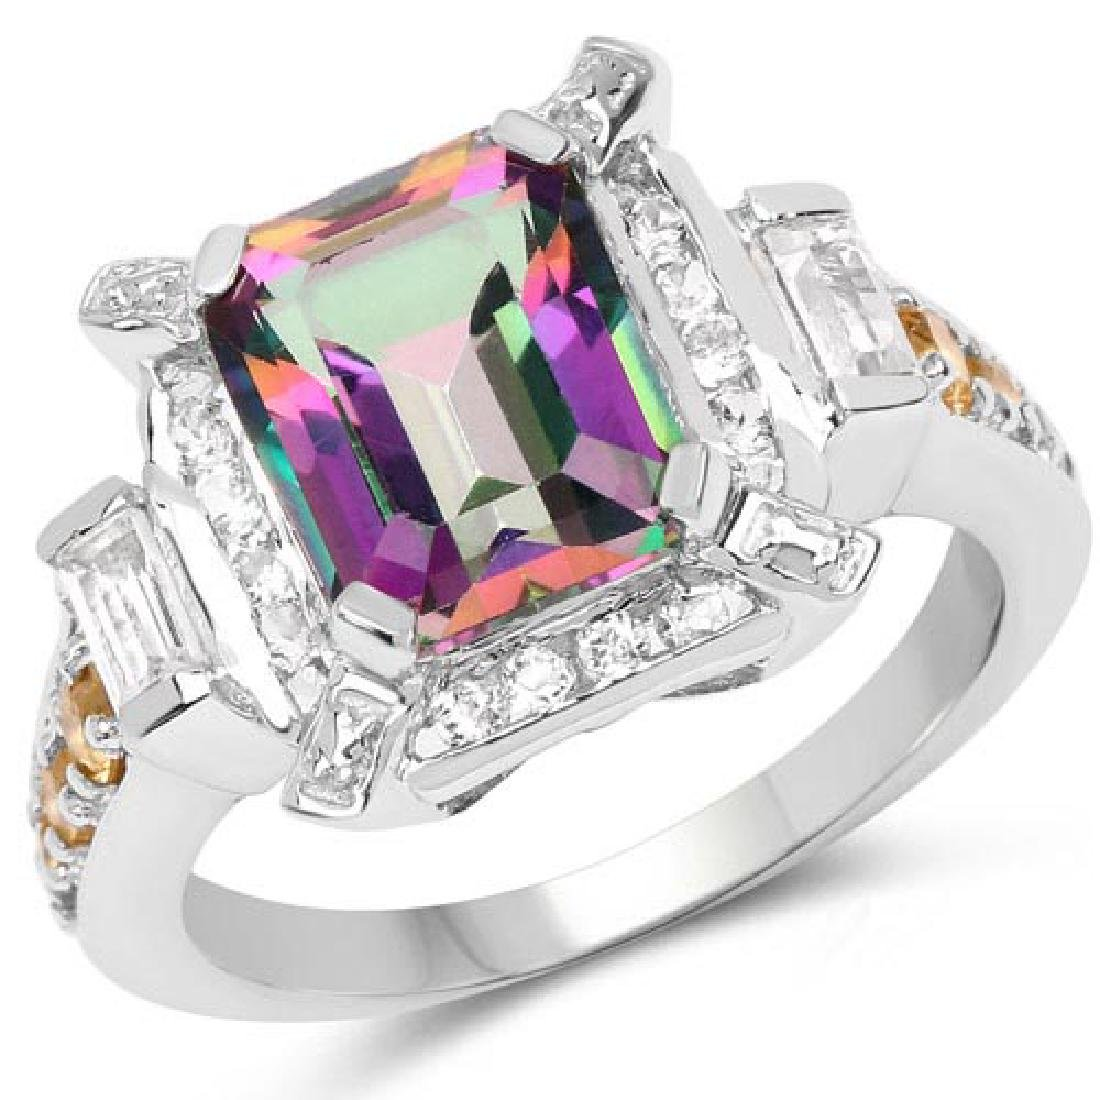 5.62 Carat Genuine Mystic Topaz Citrine and White Topa